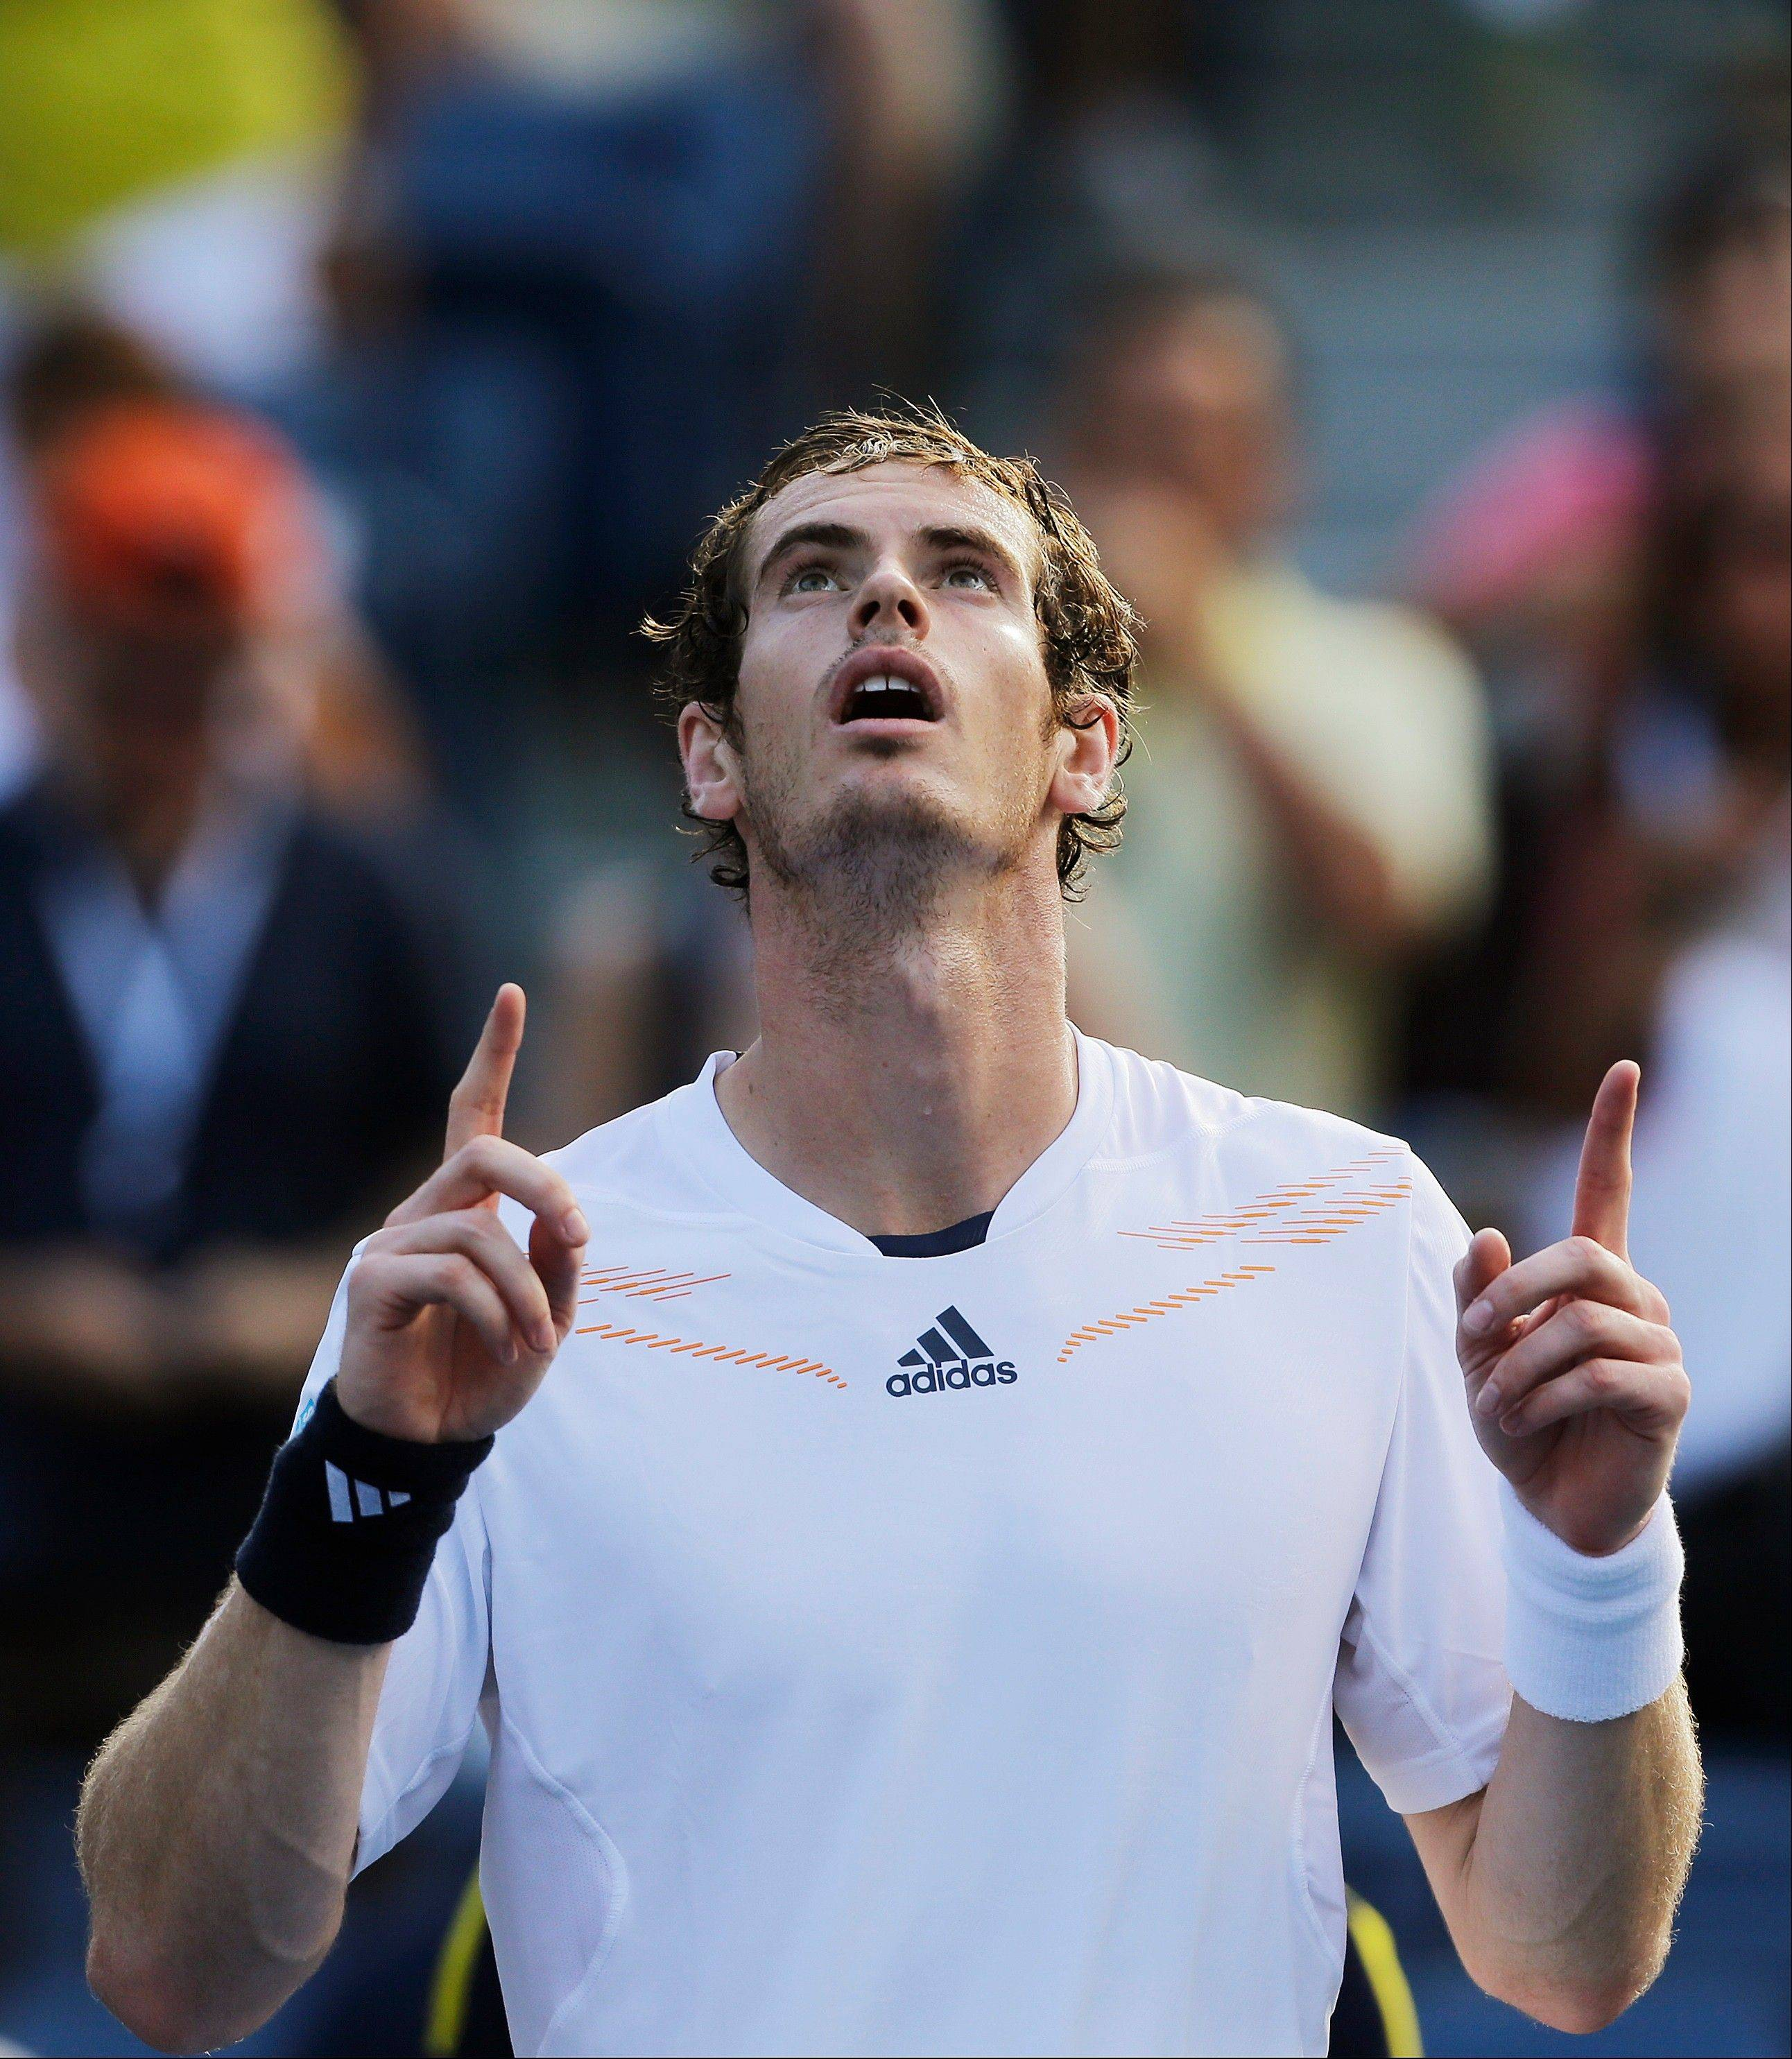 Britain�s Andy Murray celebrates after winning his match against Alex Bogomolov Jr. of Russia on Monday at the U.S. Open tennis tournament in New York.